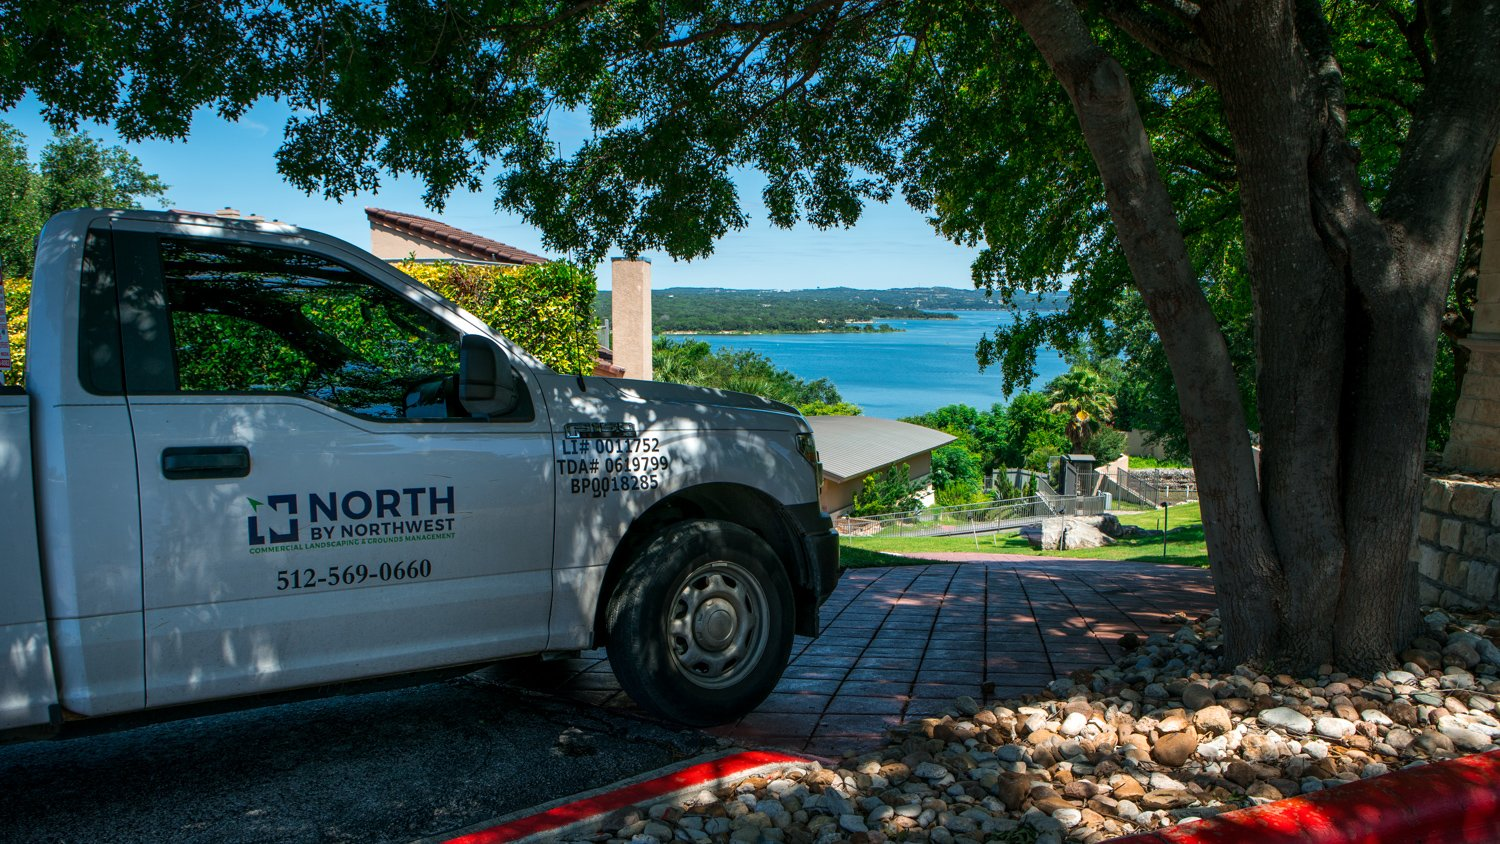 North By Northwest landscaping truck at apartment complex